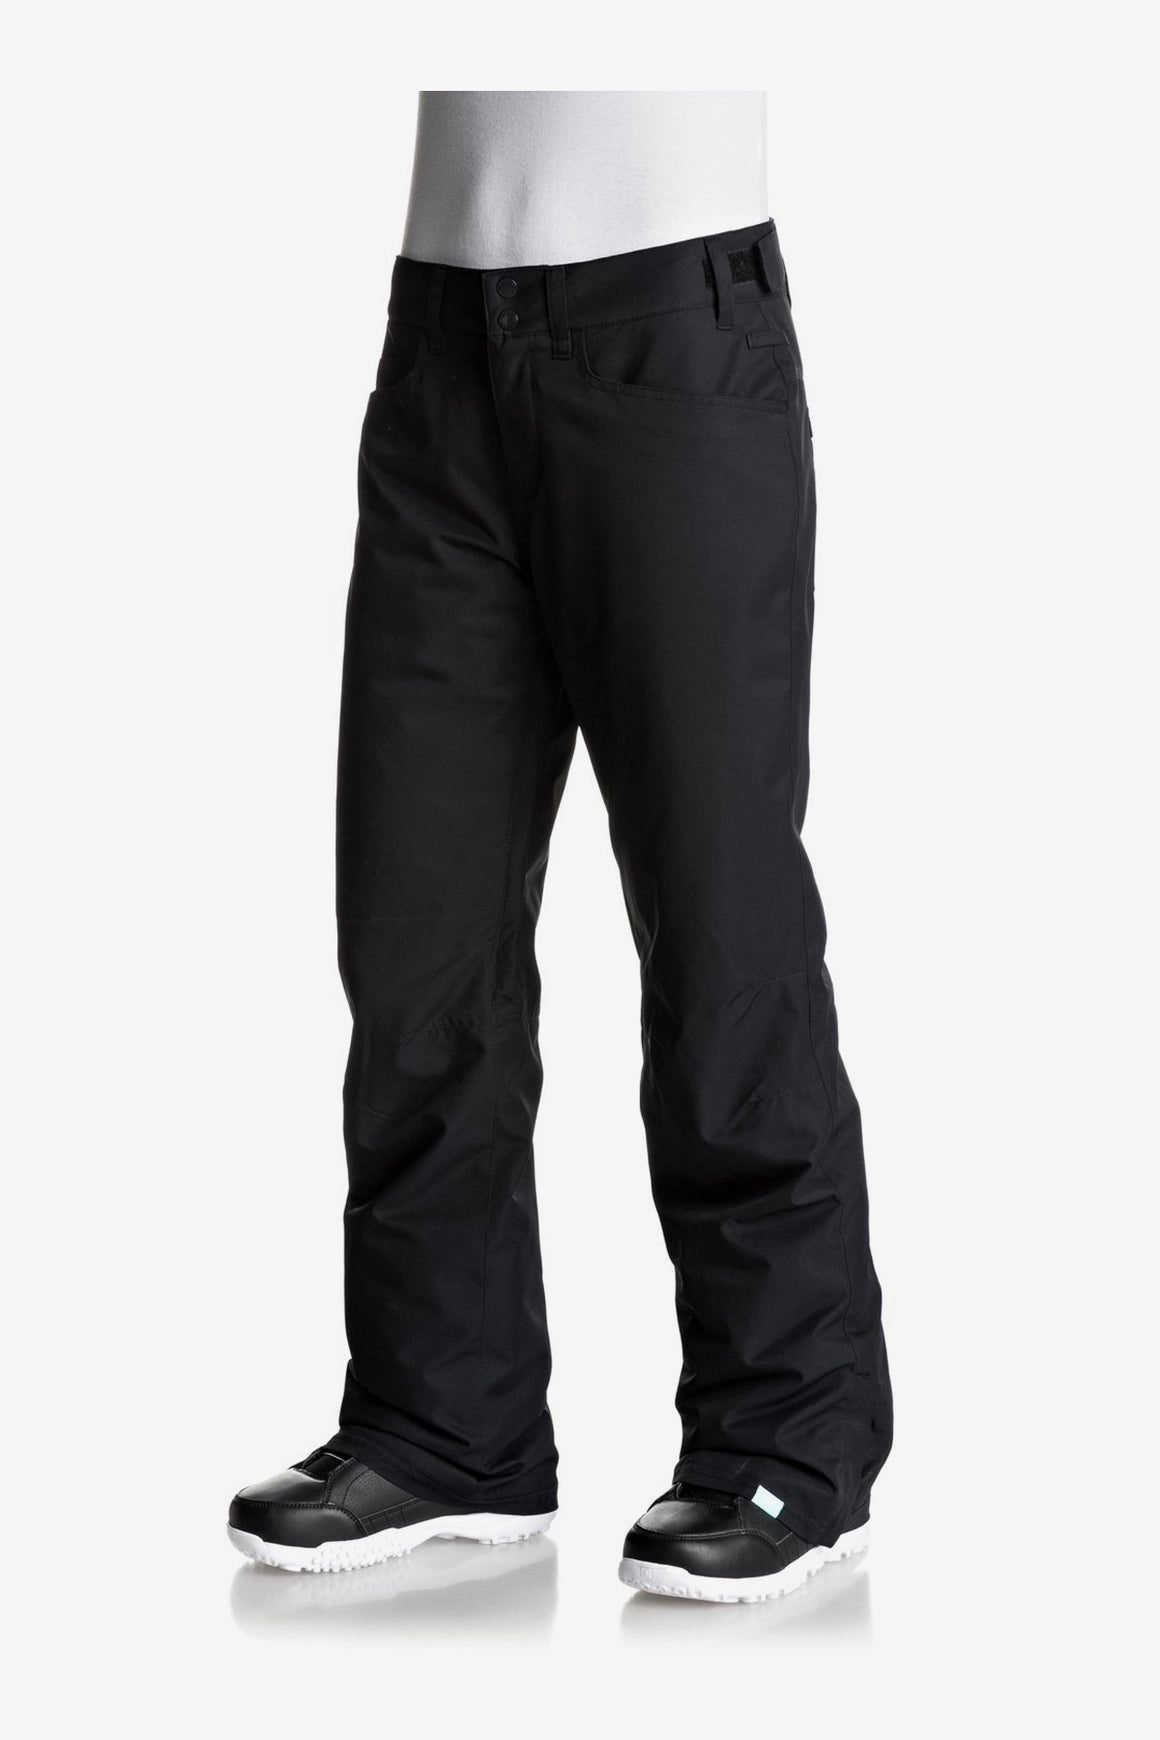 Roxy Backyard Snow Pants - Black